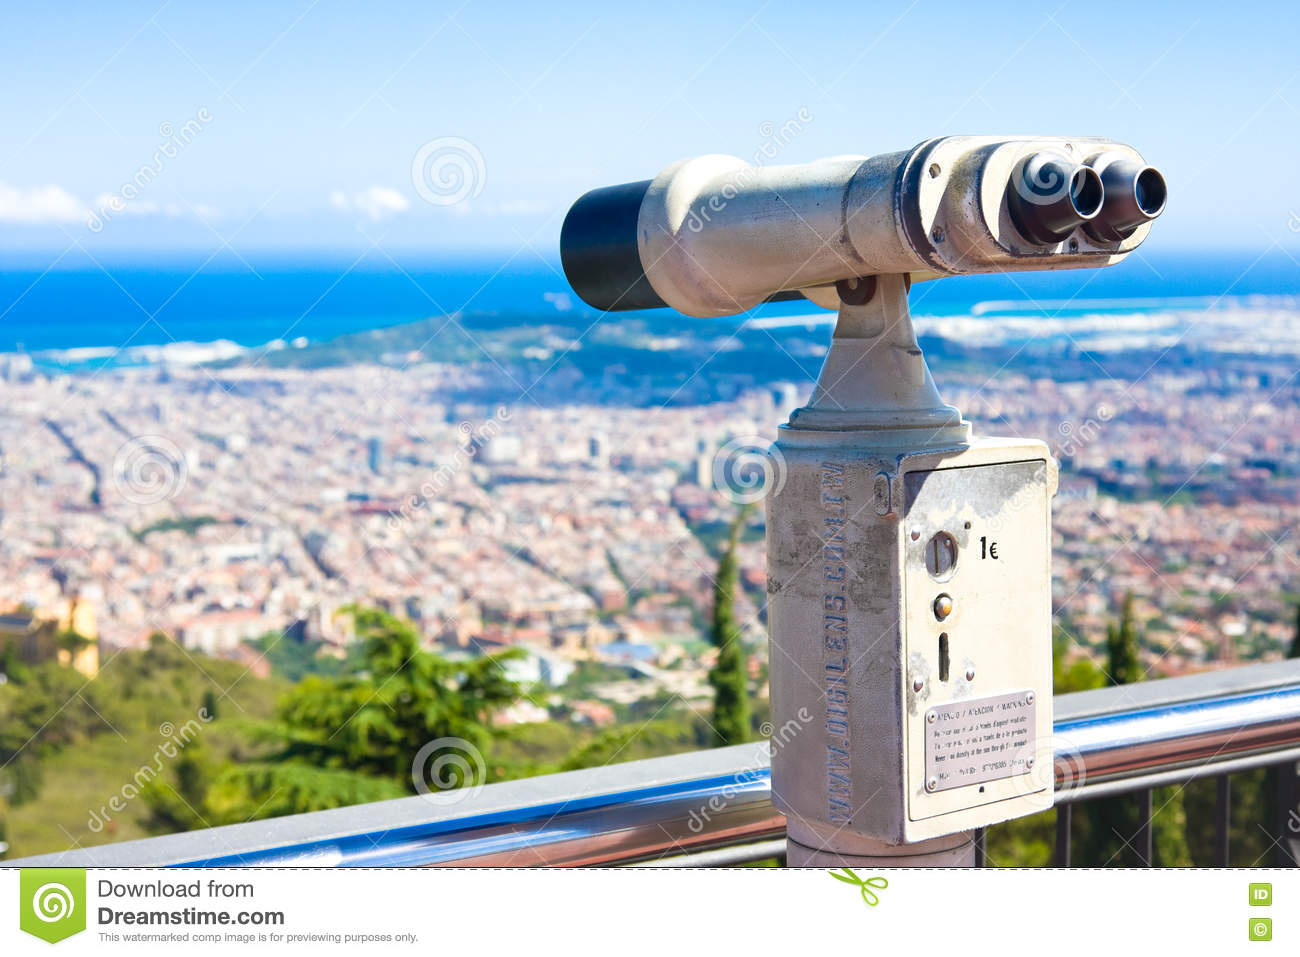 BARCELONA, SPAIN - JULY 13, 2016:Touristic telescope look at Barcelona, close up metal binoculars on background viewpoint overlook